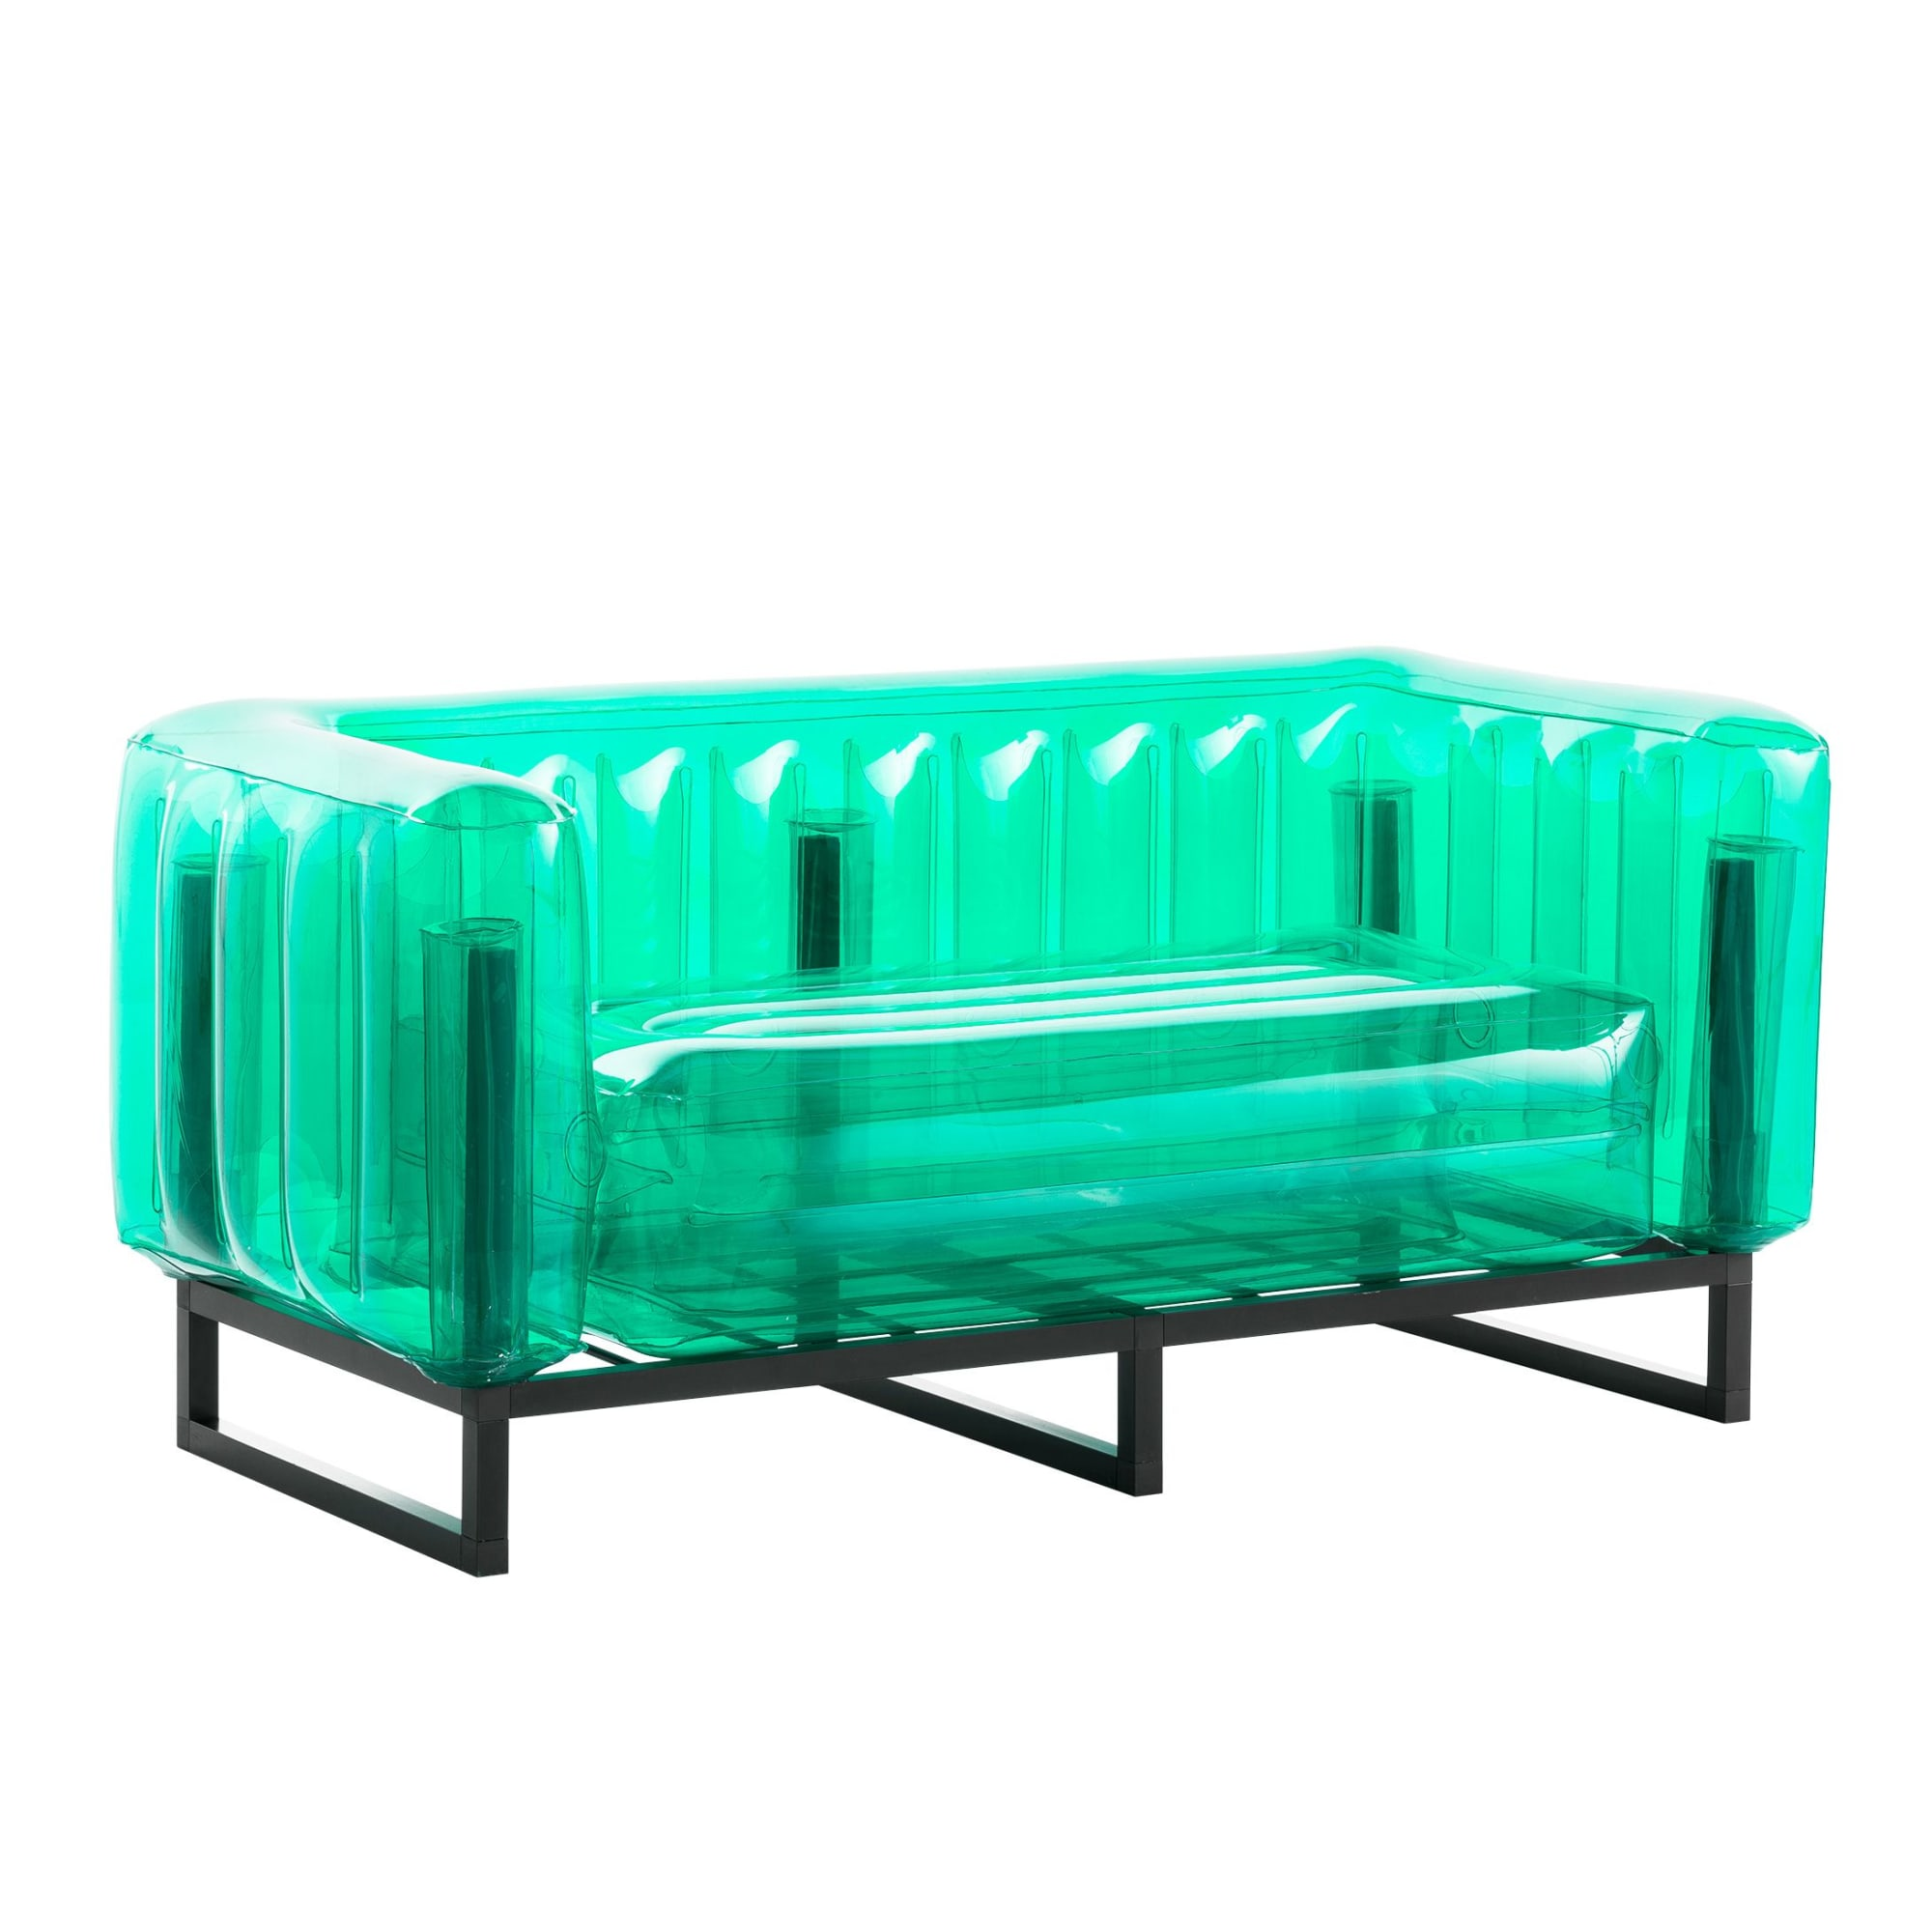 Couches & Sofas by MOJOW seen at Private Residence, Paris - YOMI Sofa